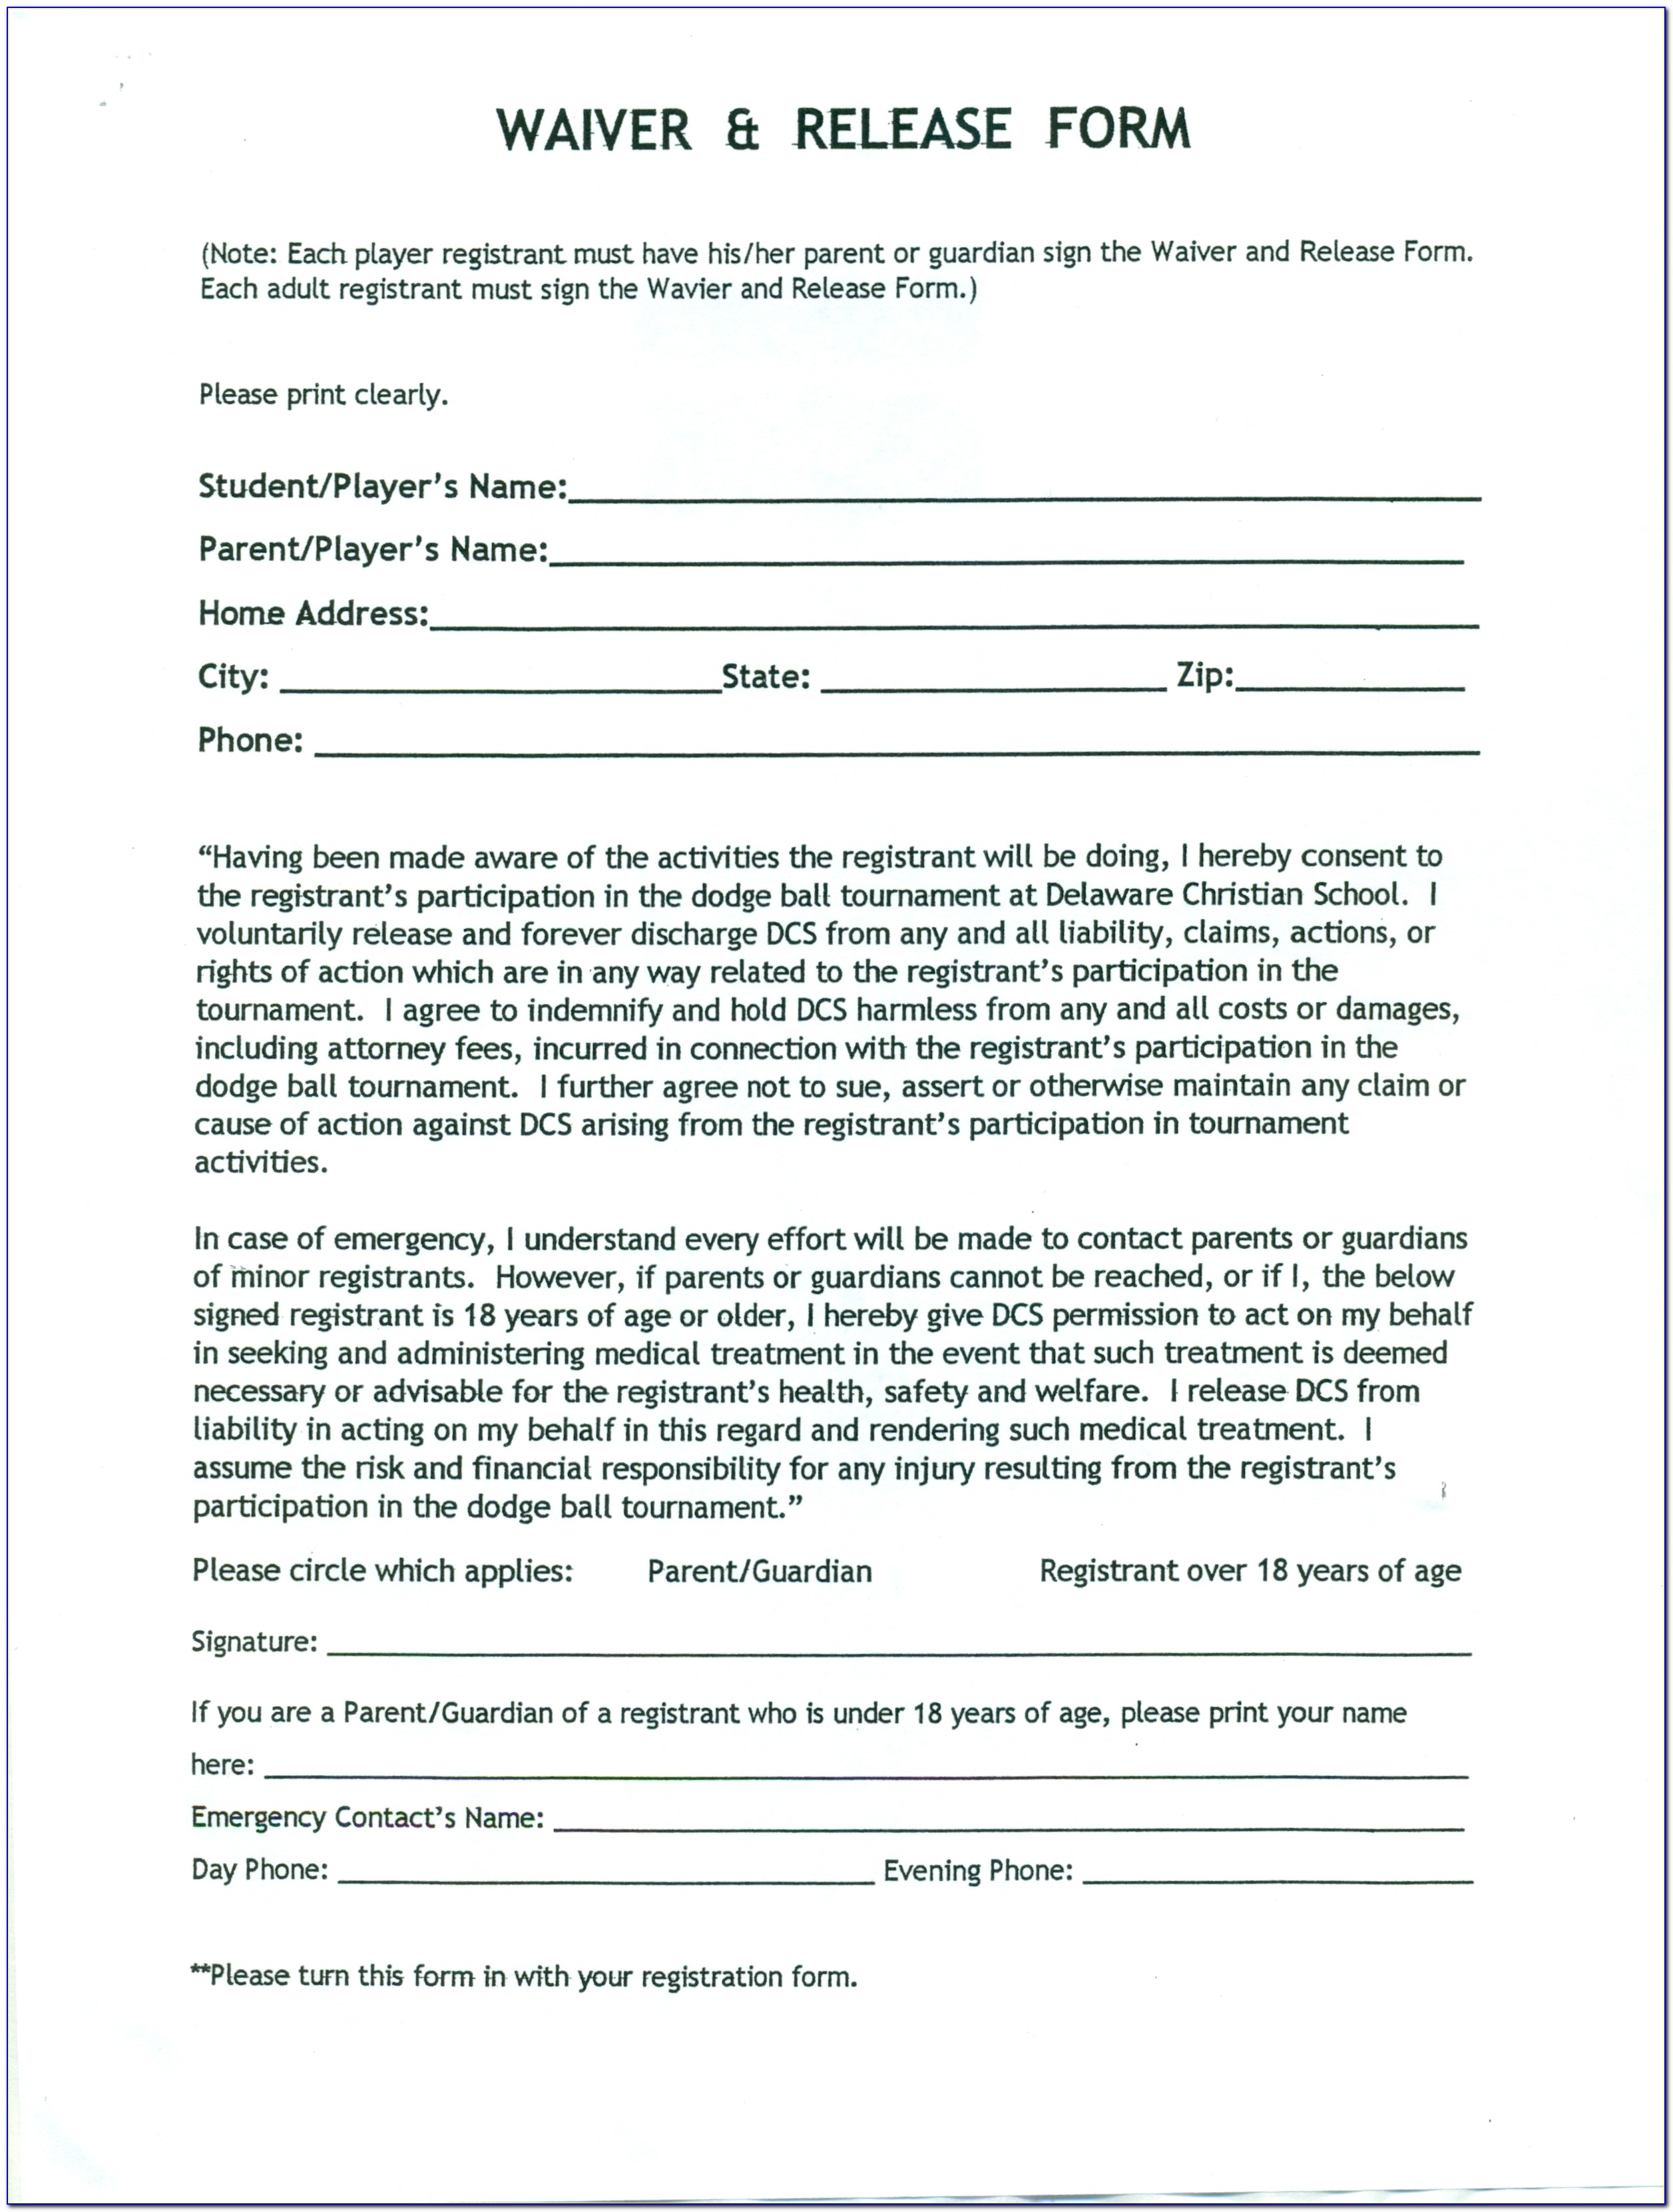 Waiver And Release Form In Spanish